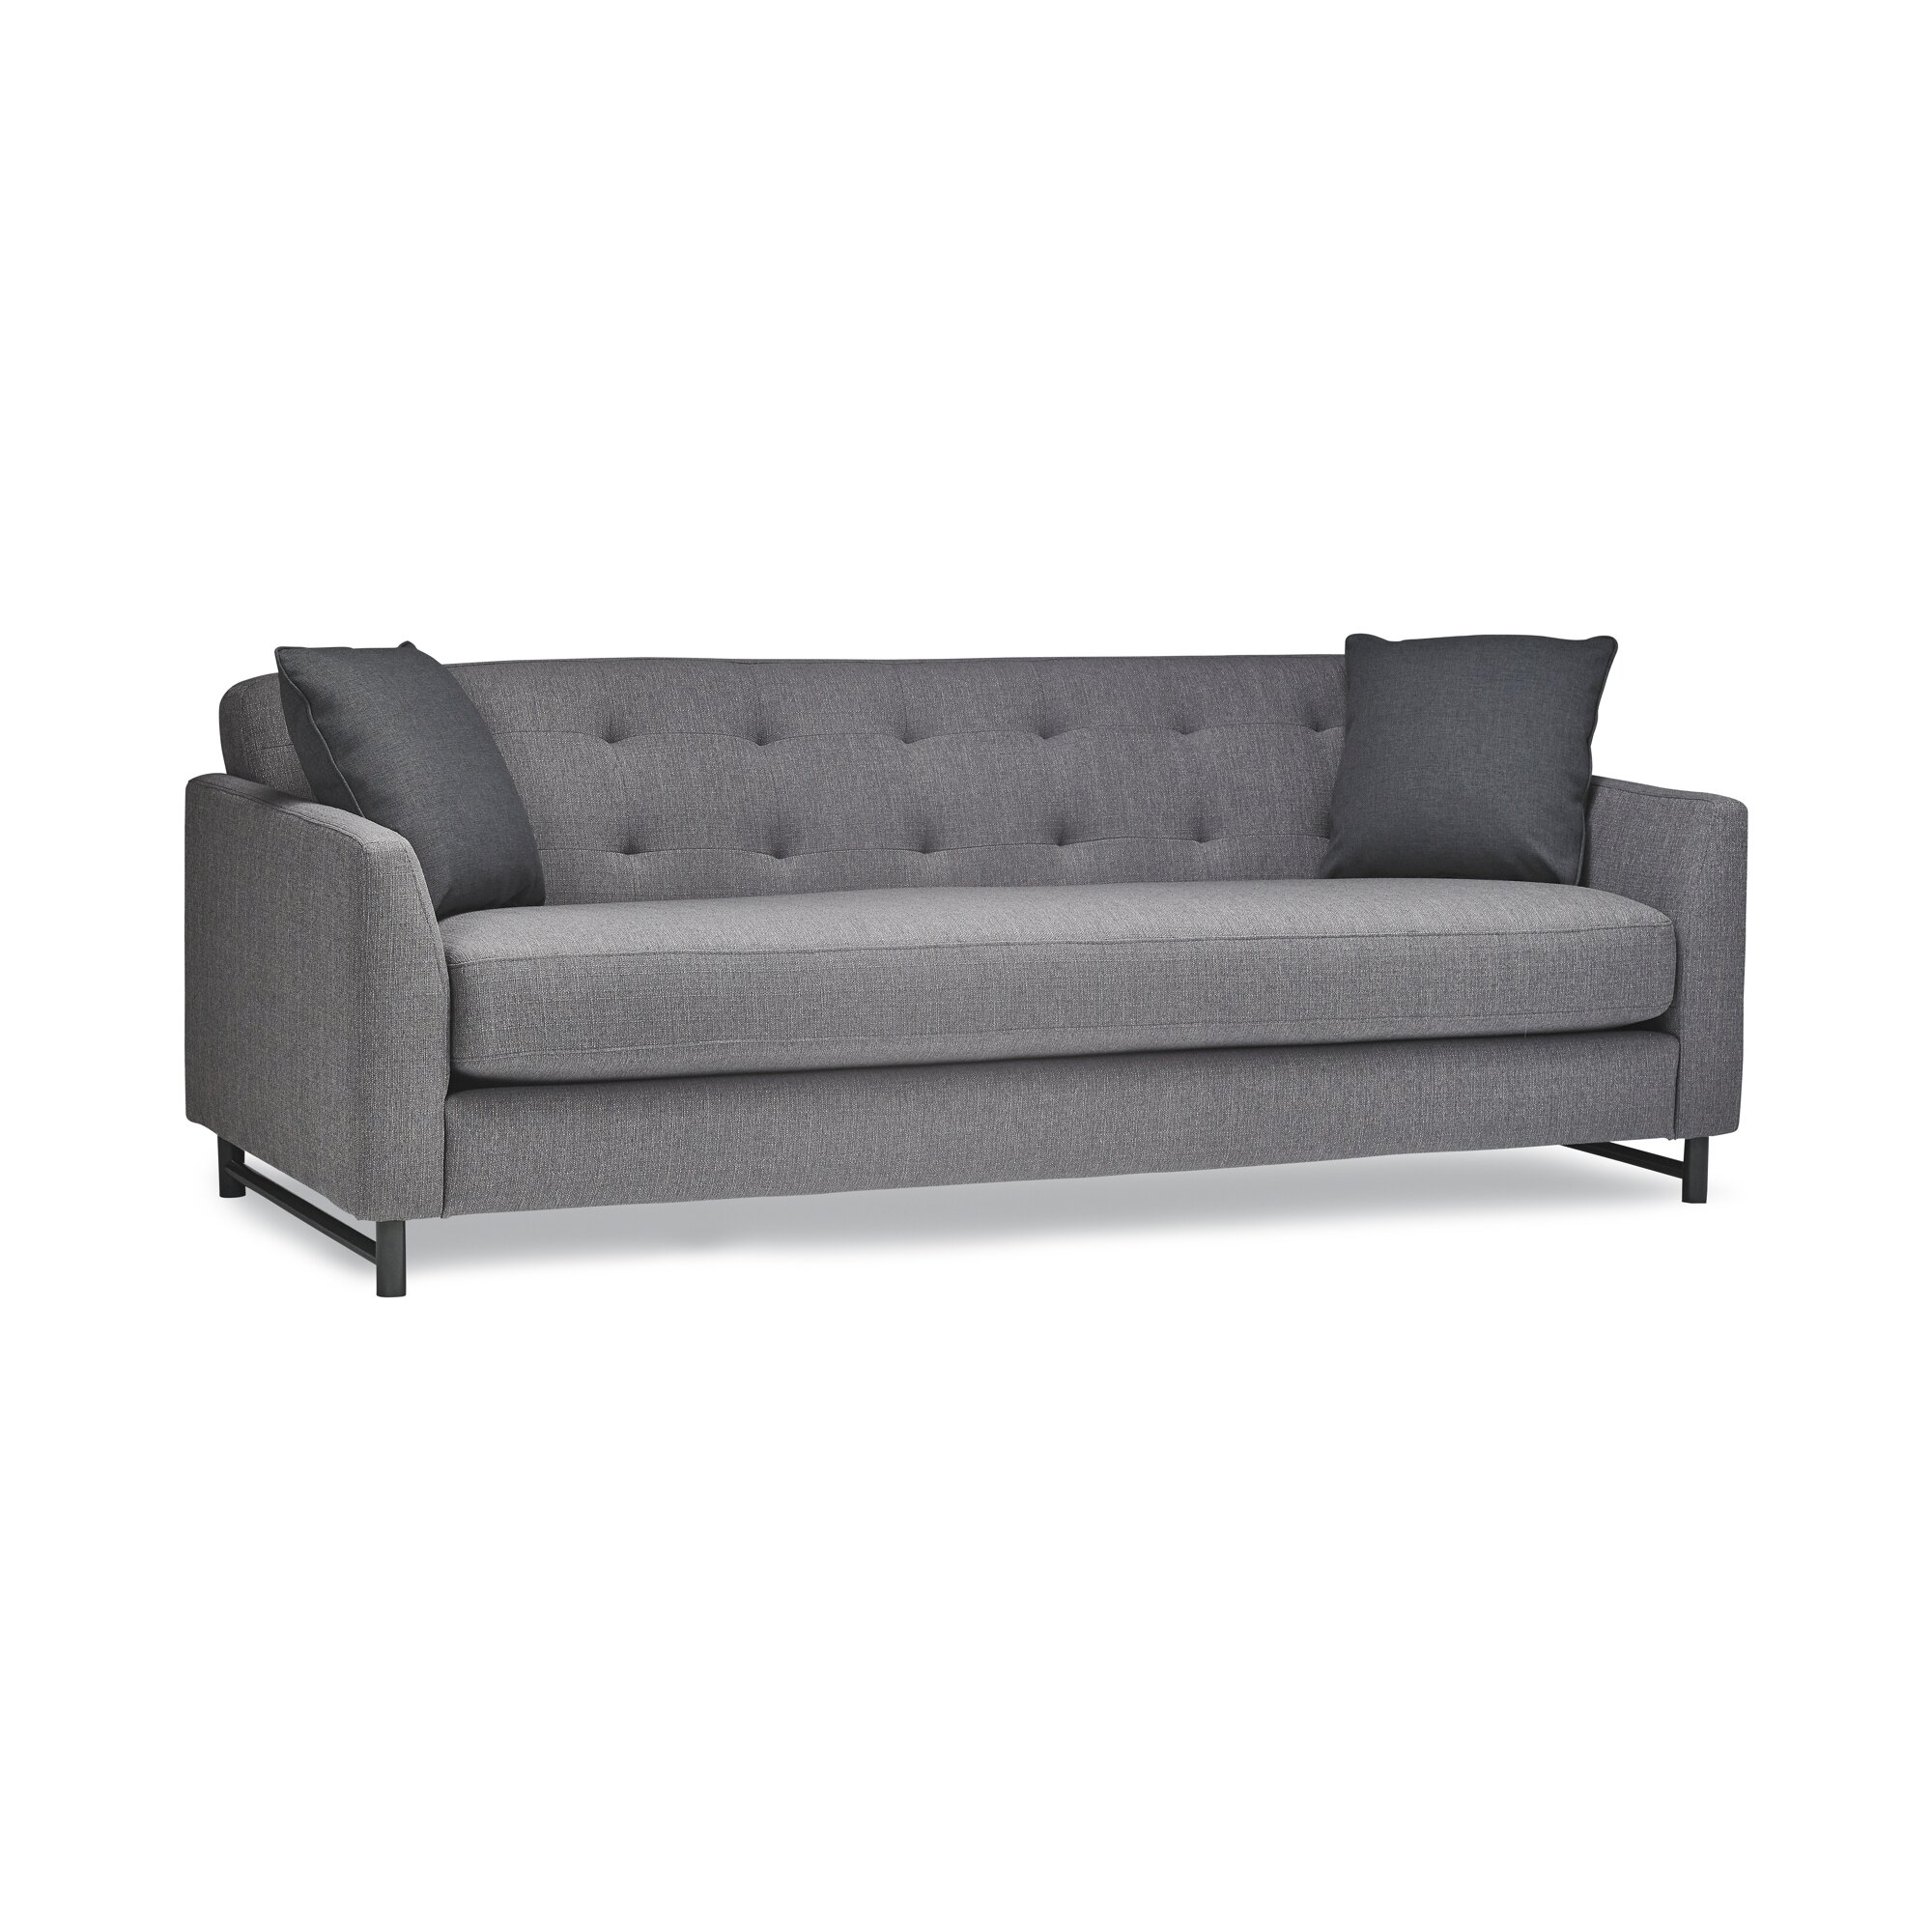 Sofas To Go Austin Sofa Wayfair